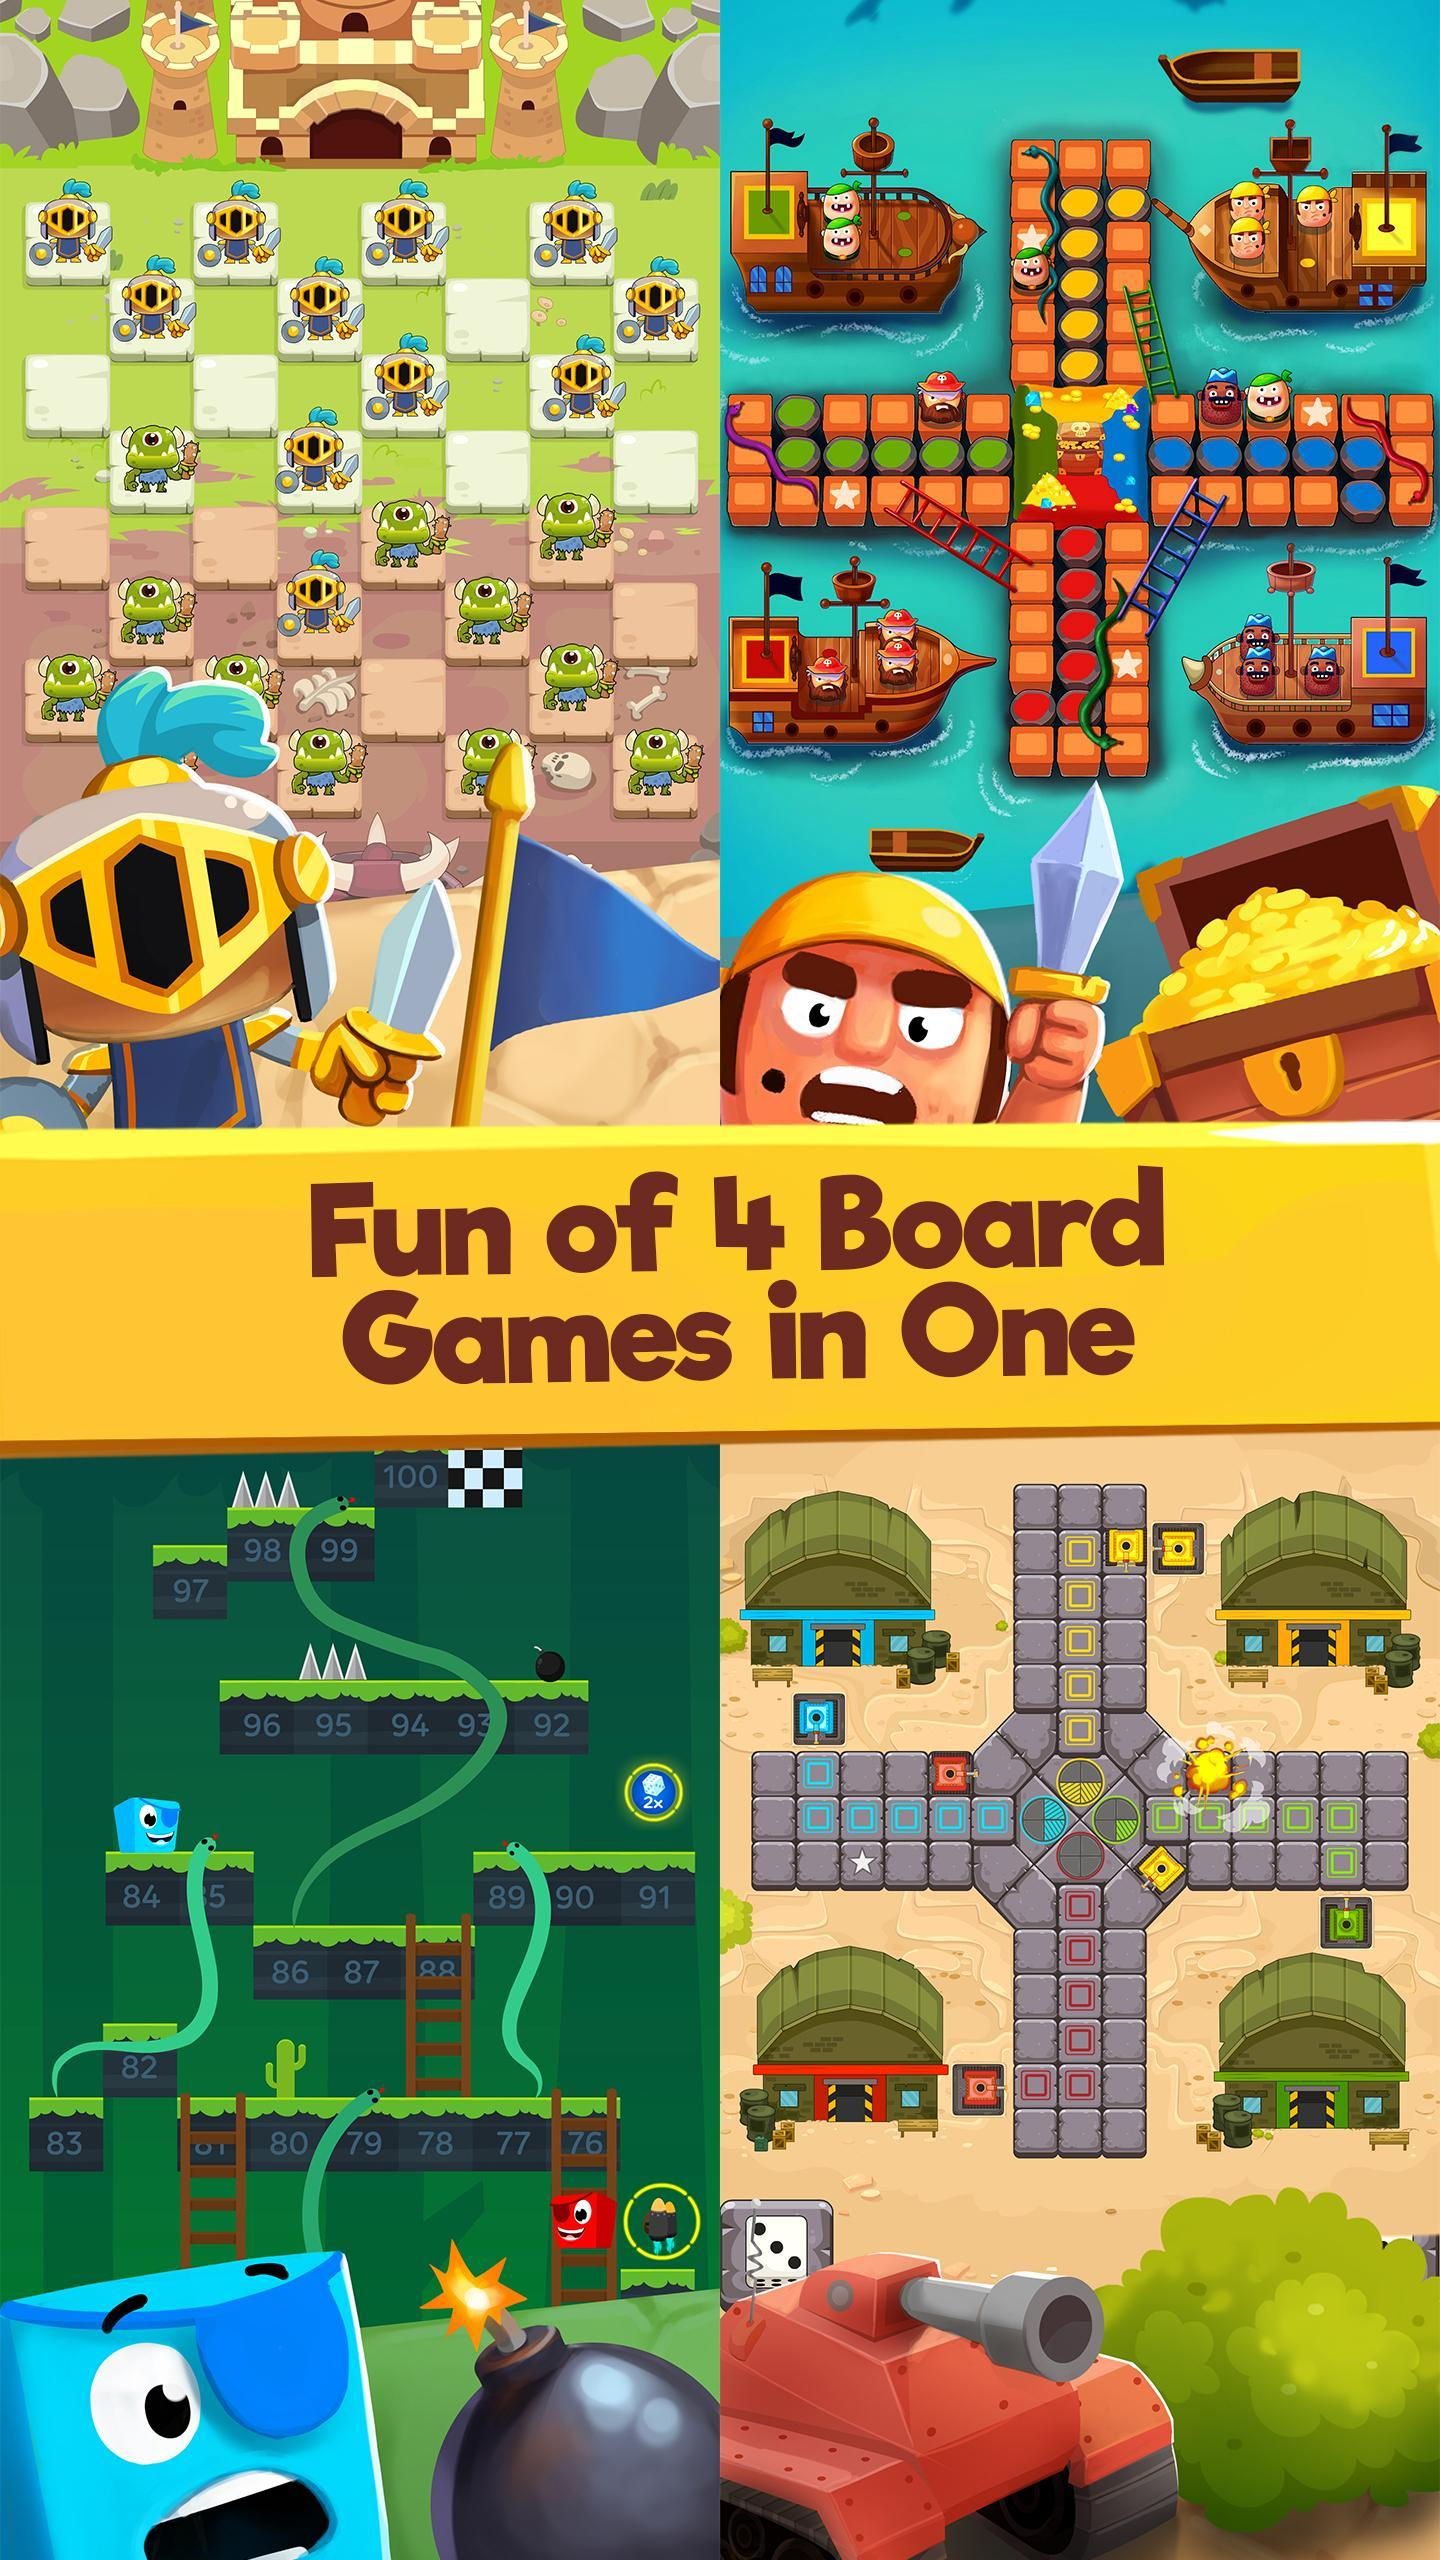 Family Board Games All In One Offline 2.1 Screenshot 1